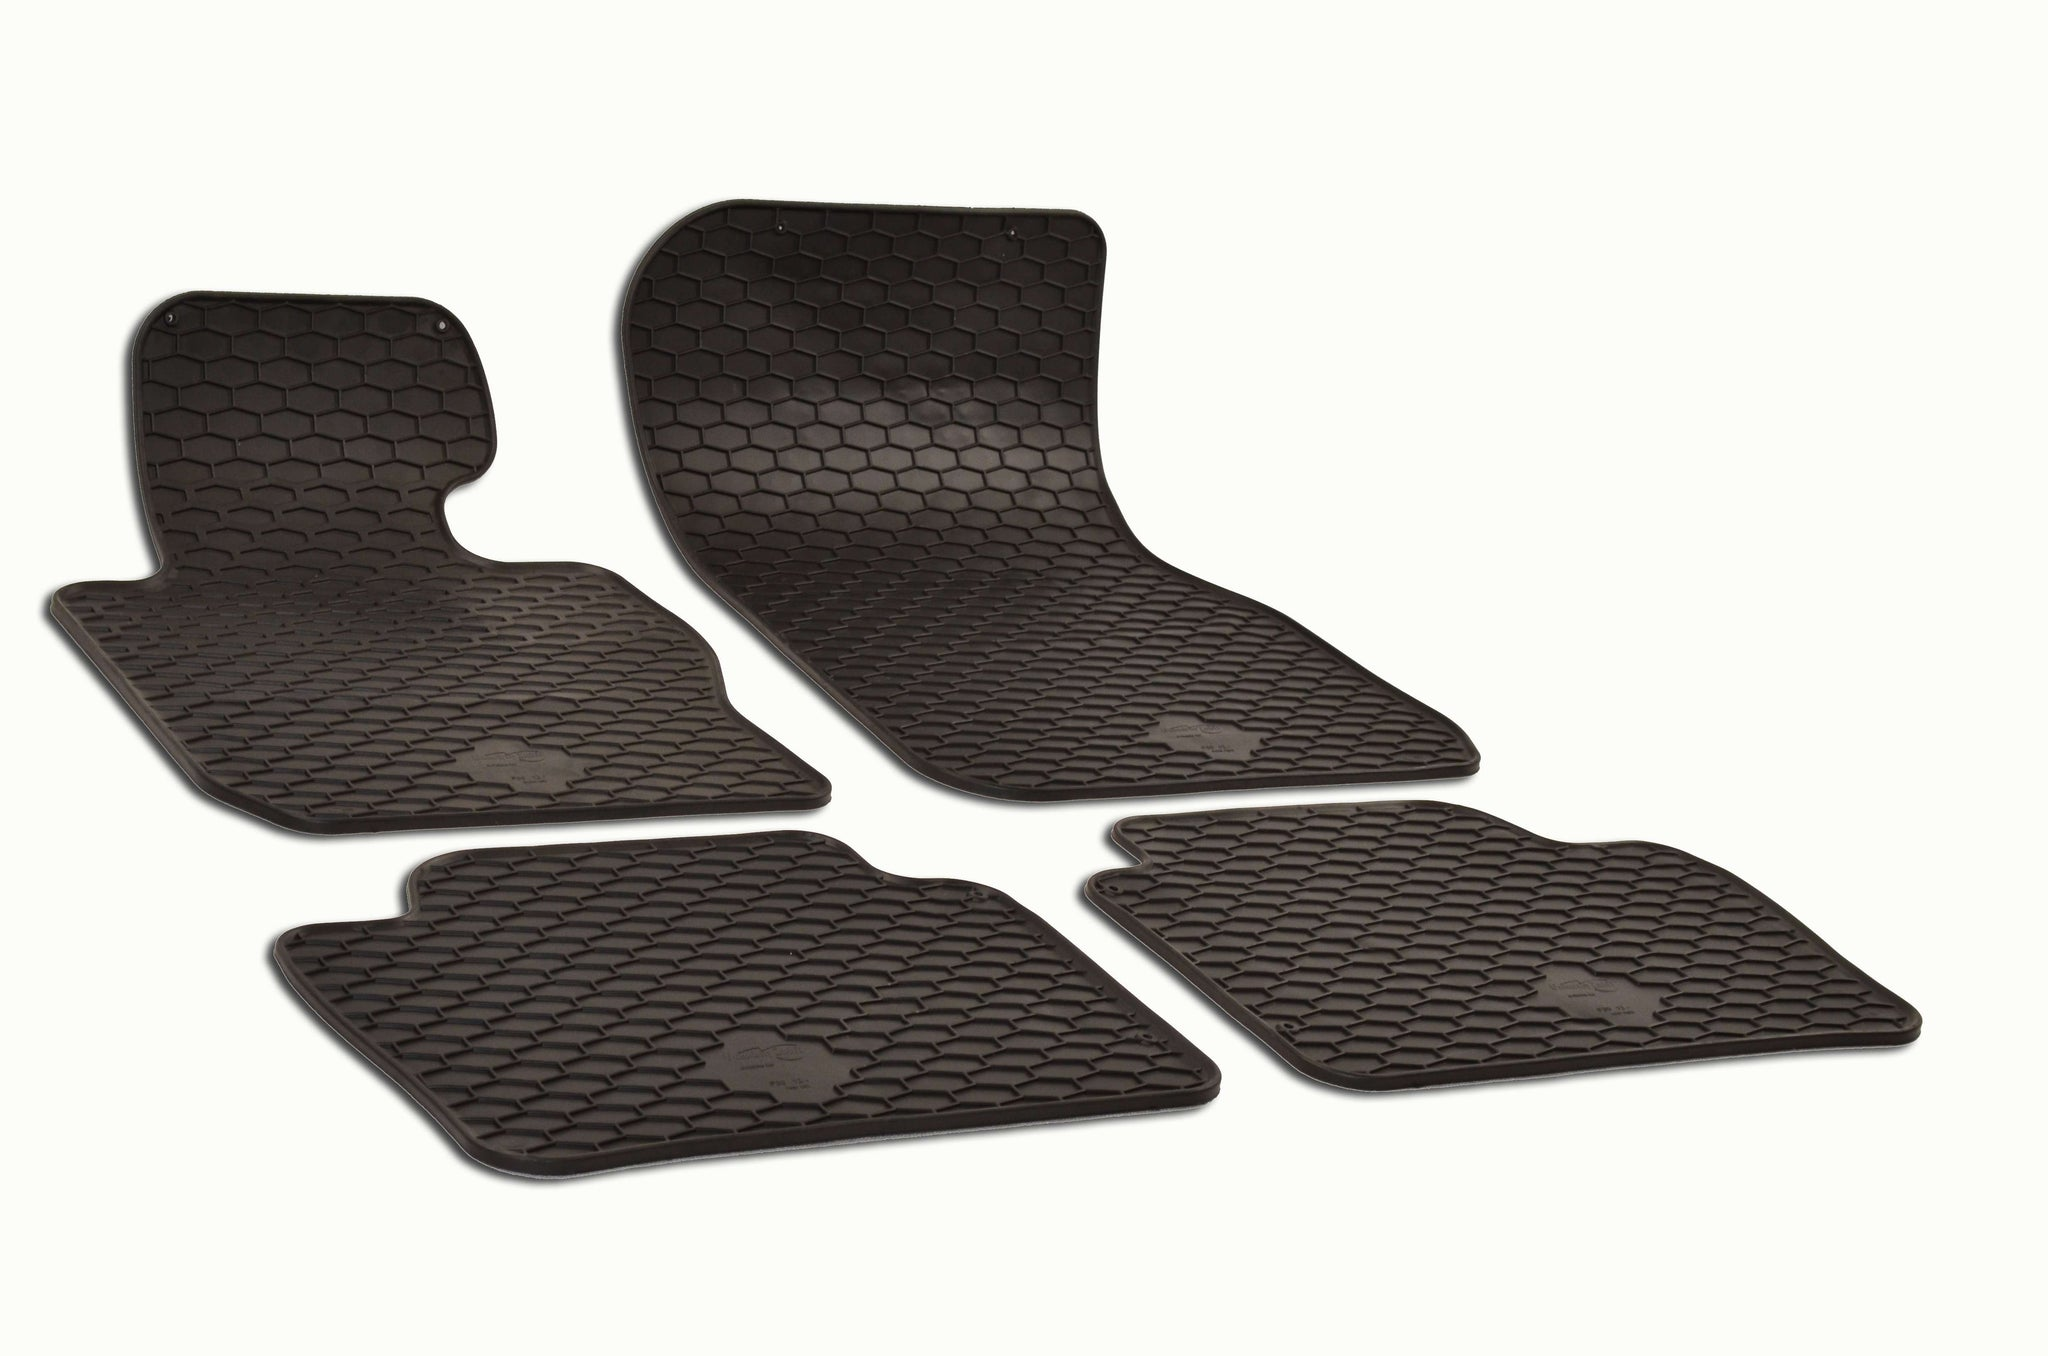 BMW 320i 2017 F30 Sedan Set of 4 Black Rubber OE Fit All Weather Floor Mats